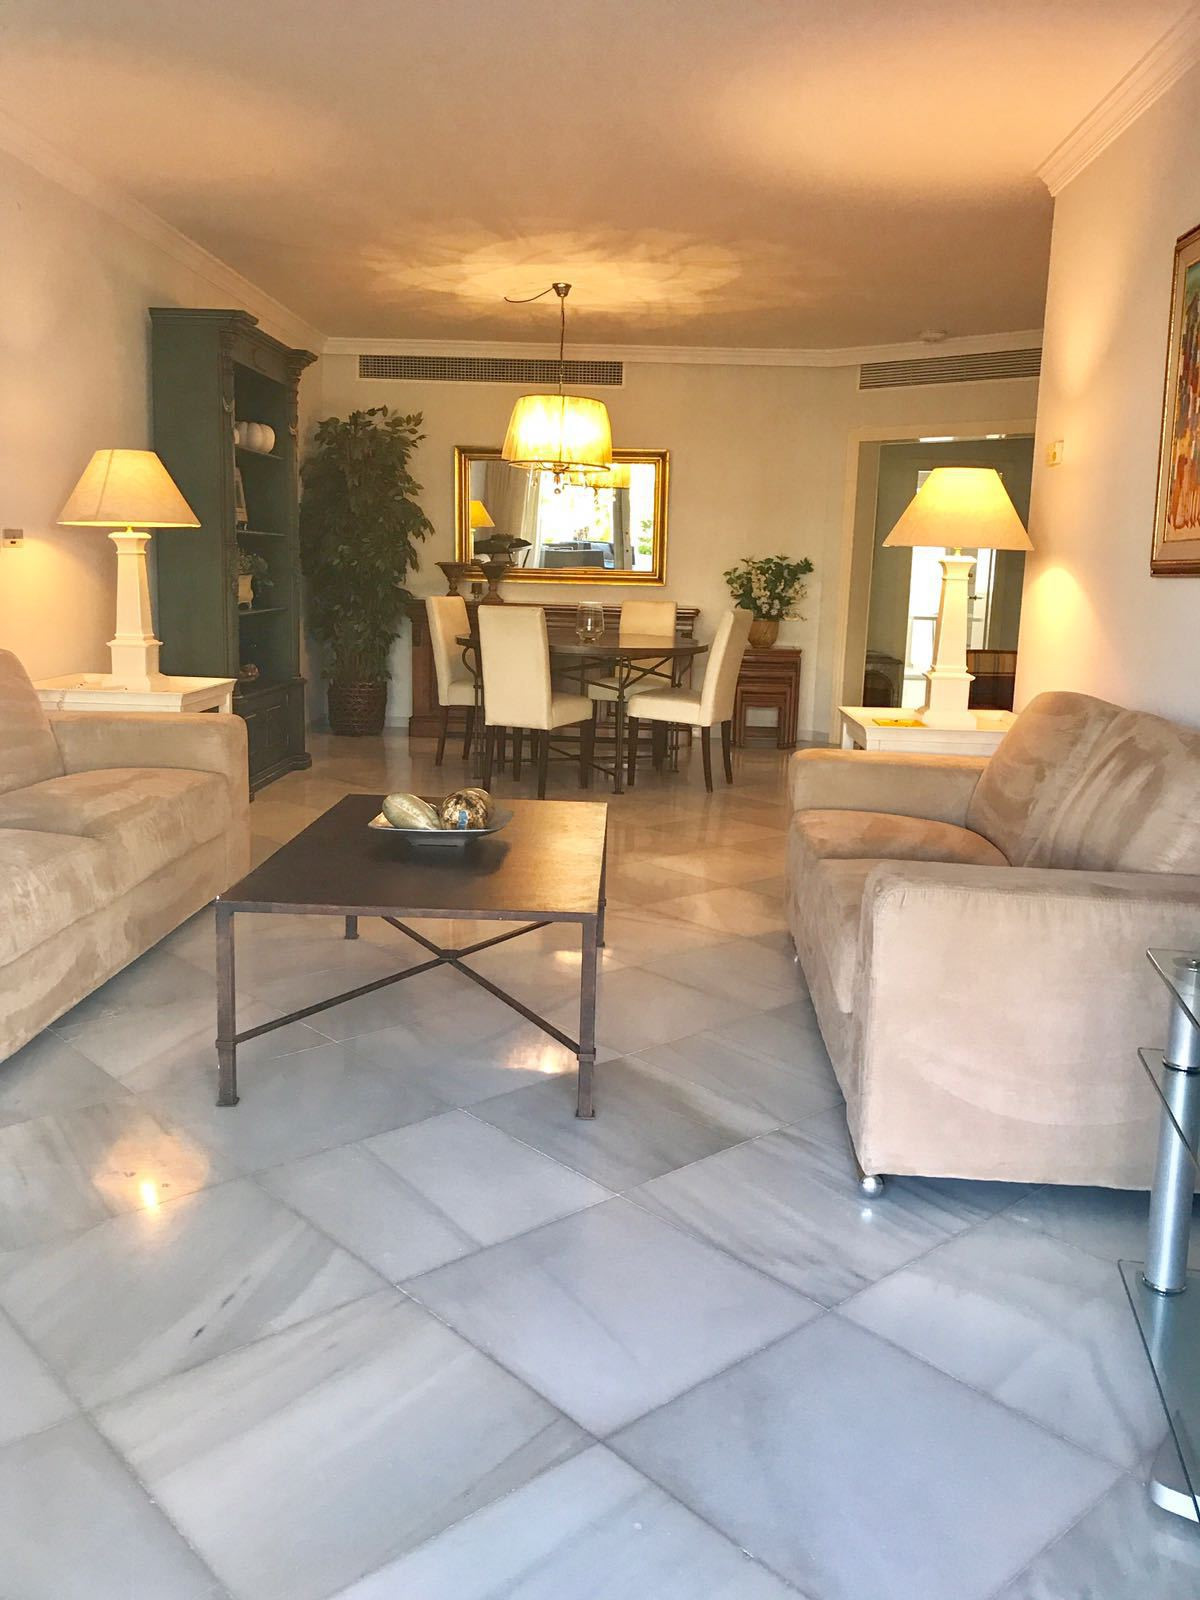 Excellent apartment located in the large urbanization Granados beach. This apartment consists of 2 b, Spain